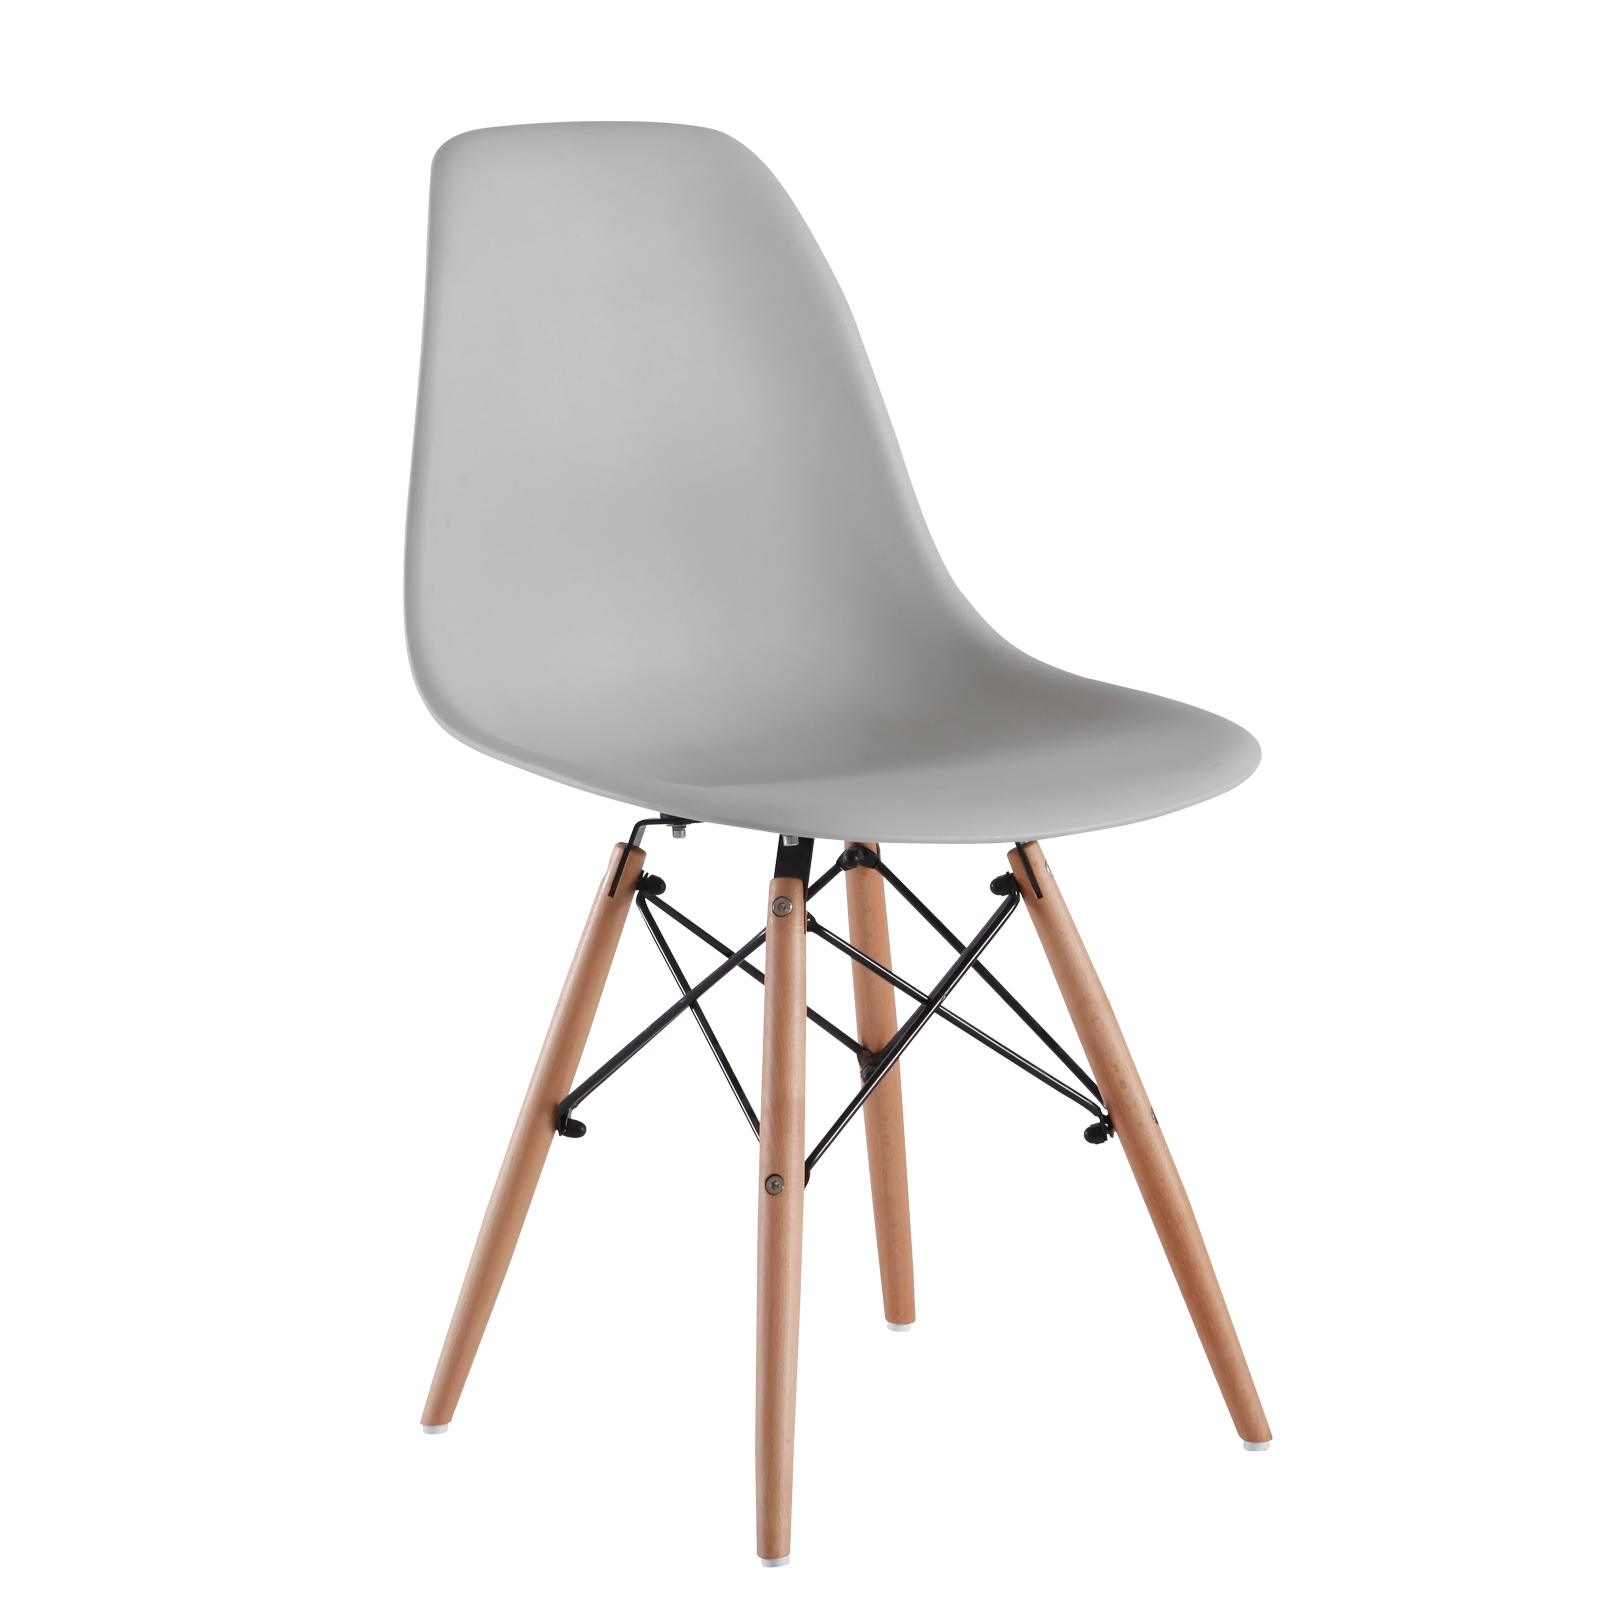 4 x Retro Replica Eames Chick DSW Dining Chairs Office  : Eames Chick Grey 01 from www.ebay.com.au size 1600 x 1600 jpeg 344kB